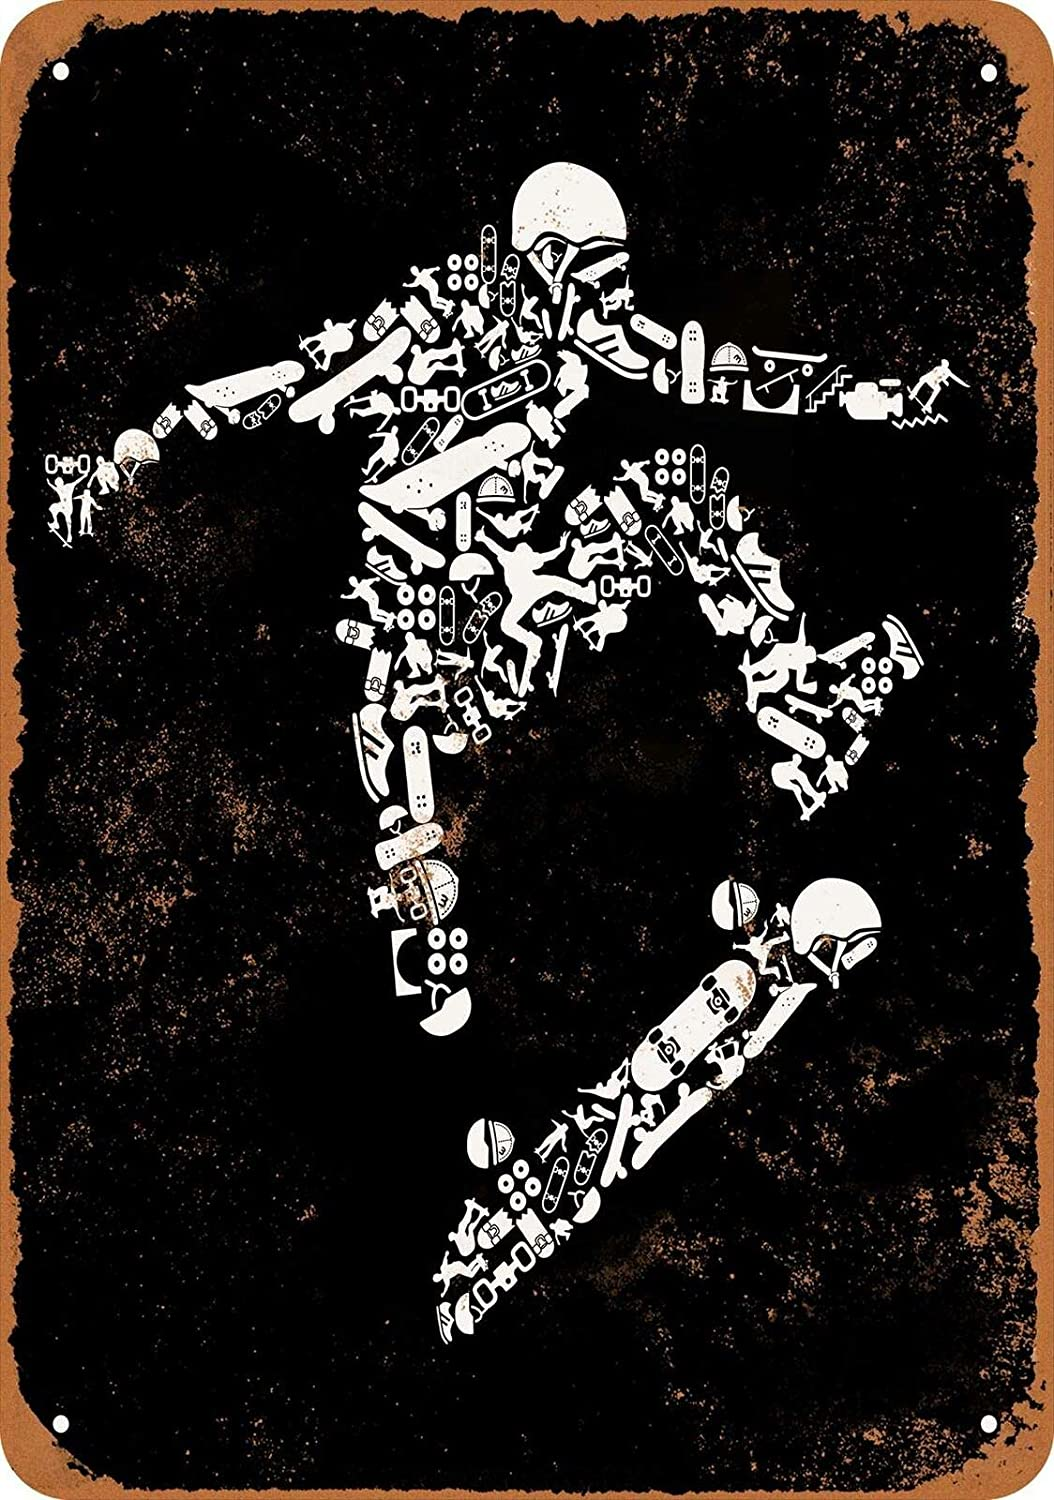 Skateboarder Made of Skateboard Icons Metal Poster Plaque Vintage Tin Sign Wall Decor 12x8 Inches